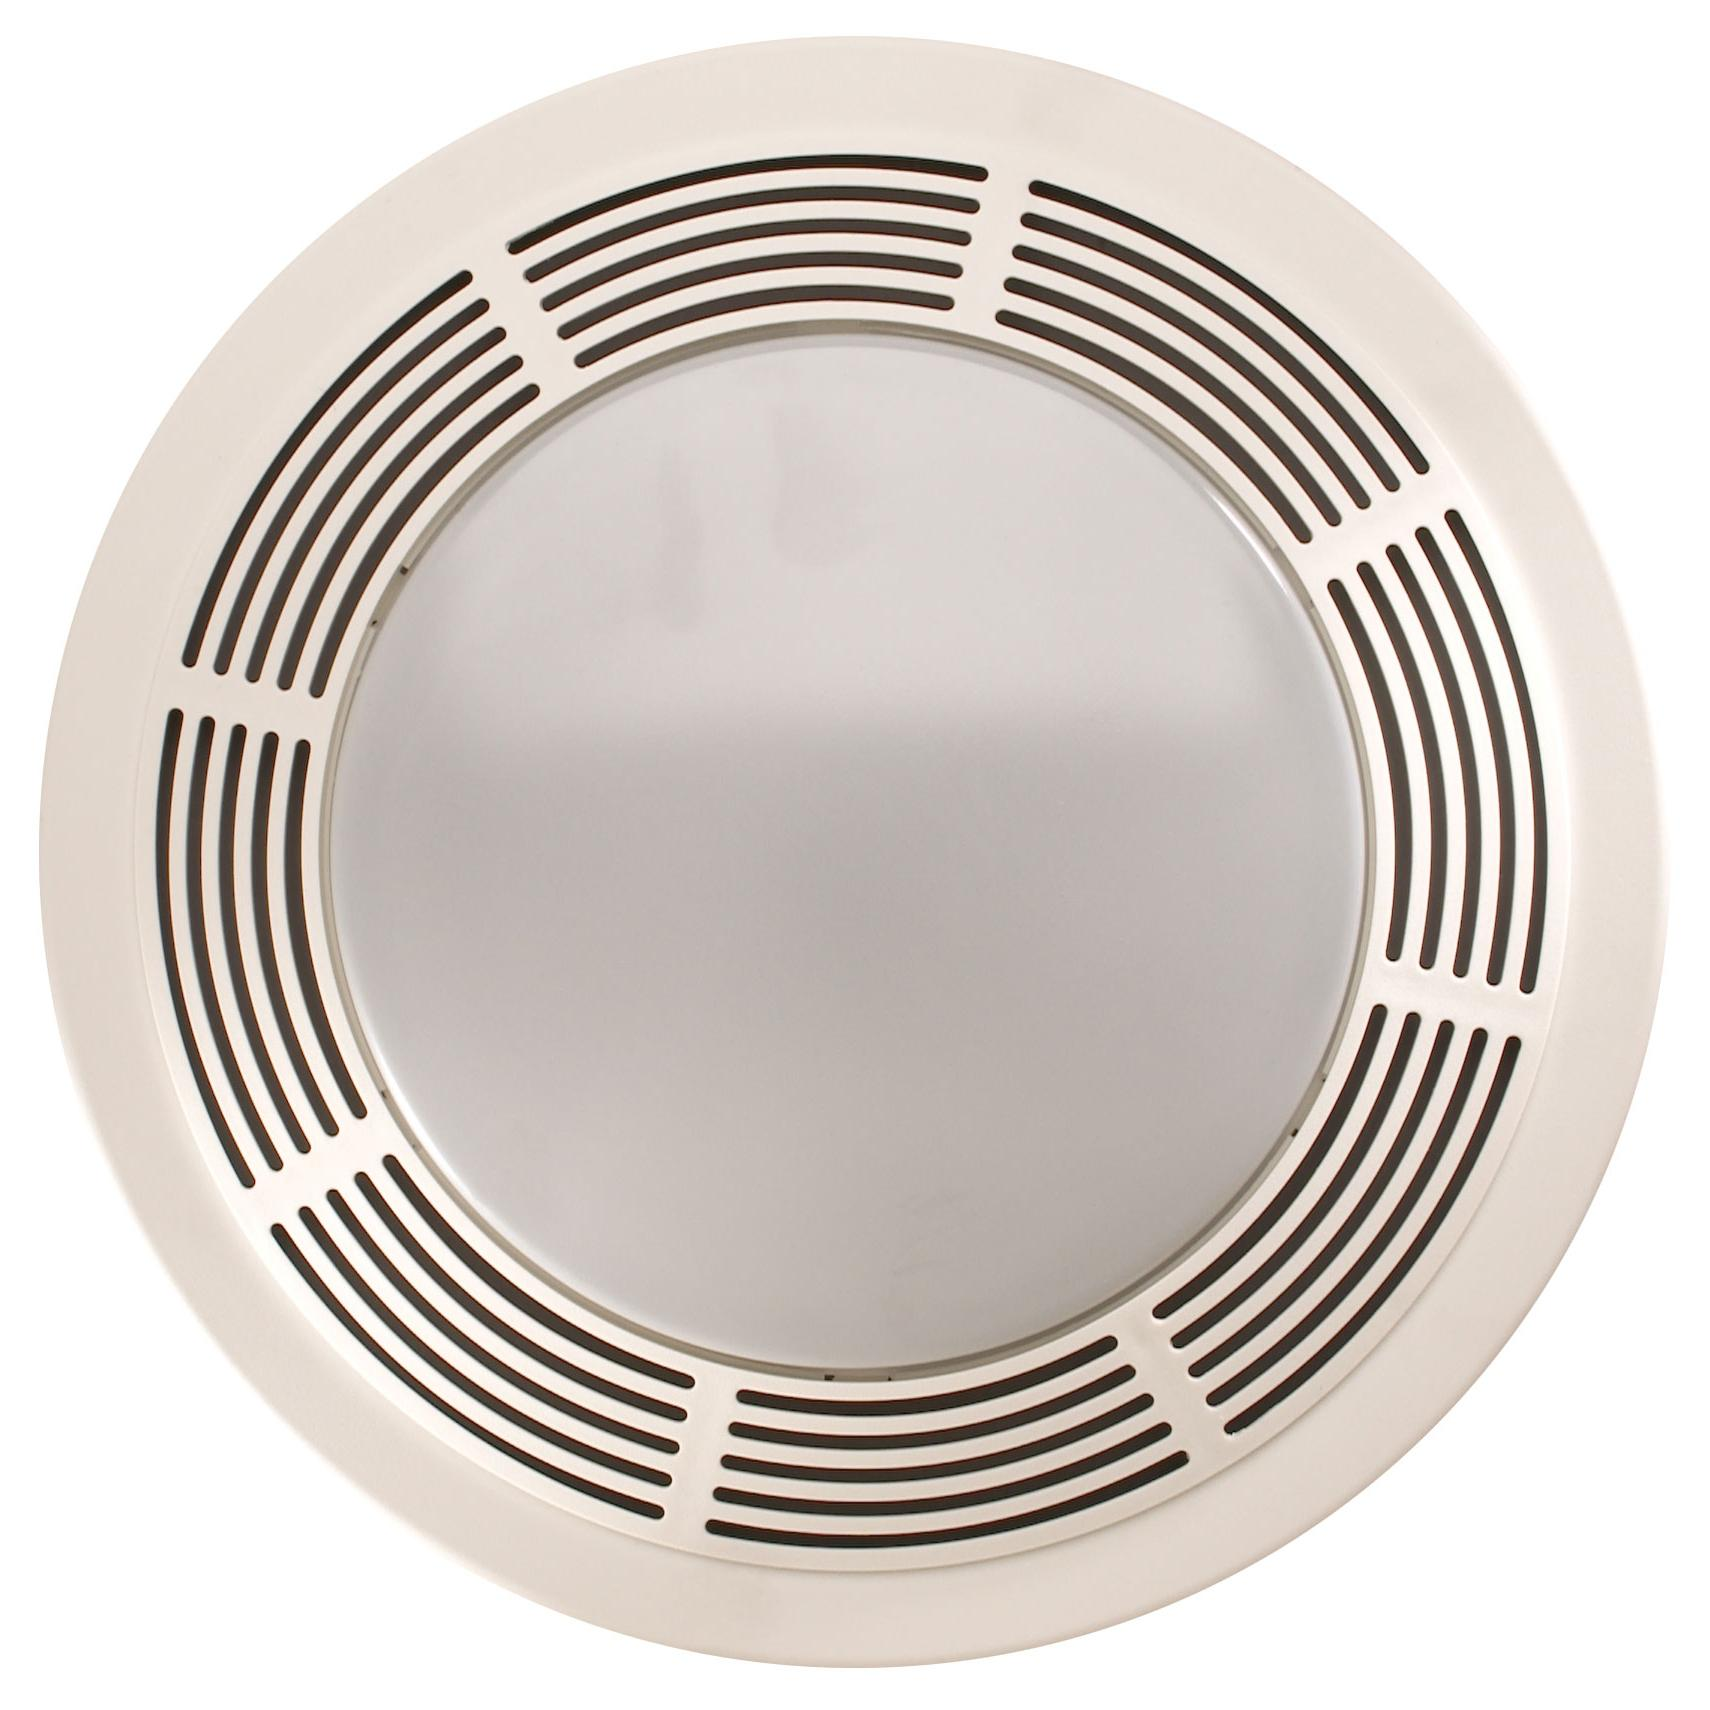 Broan Nutone 751 Round Fan And Light Combo For Bathroom